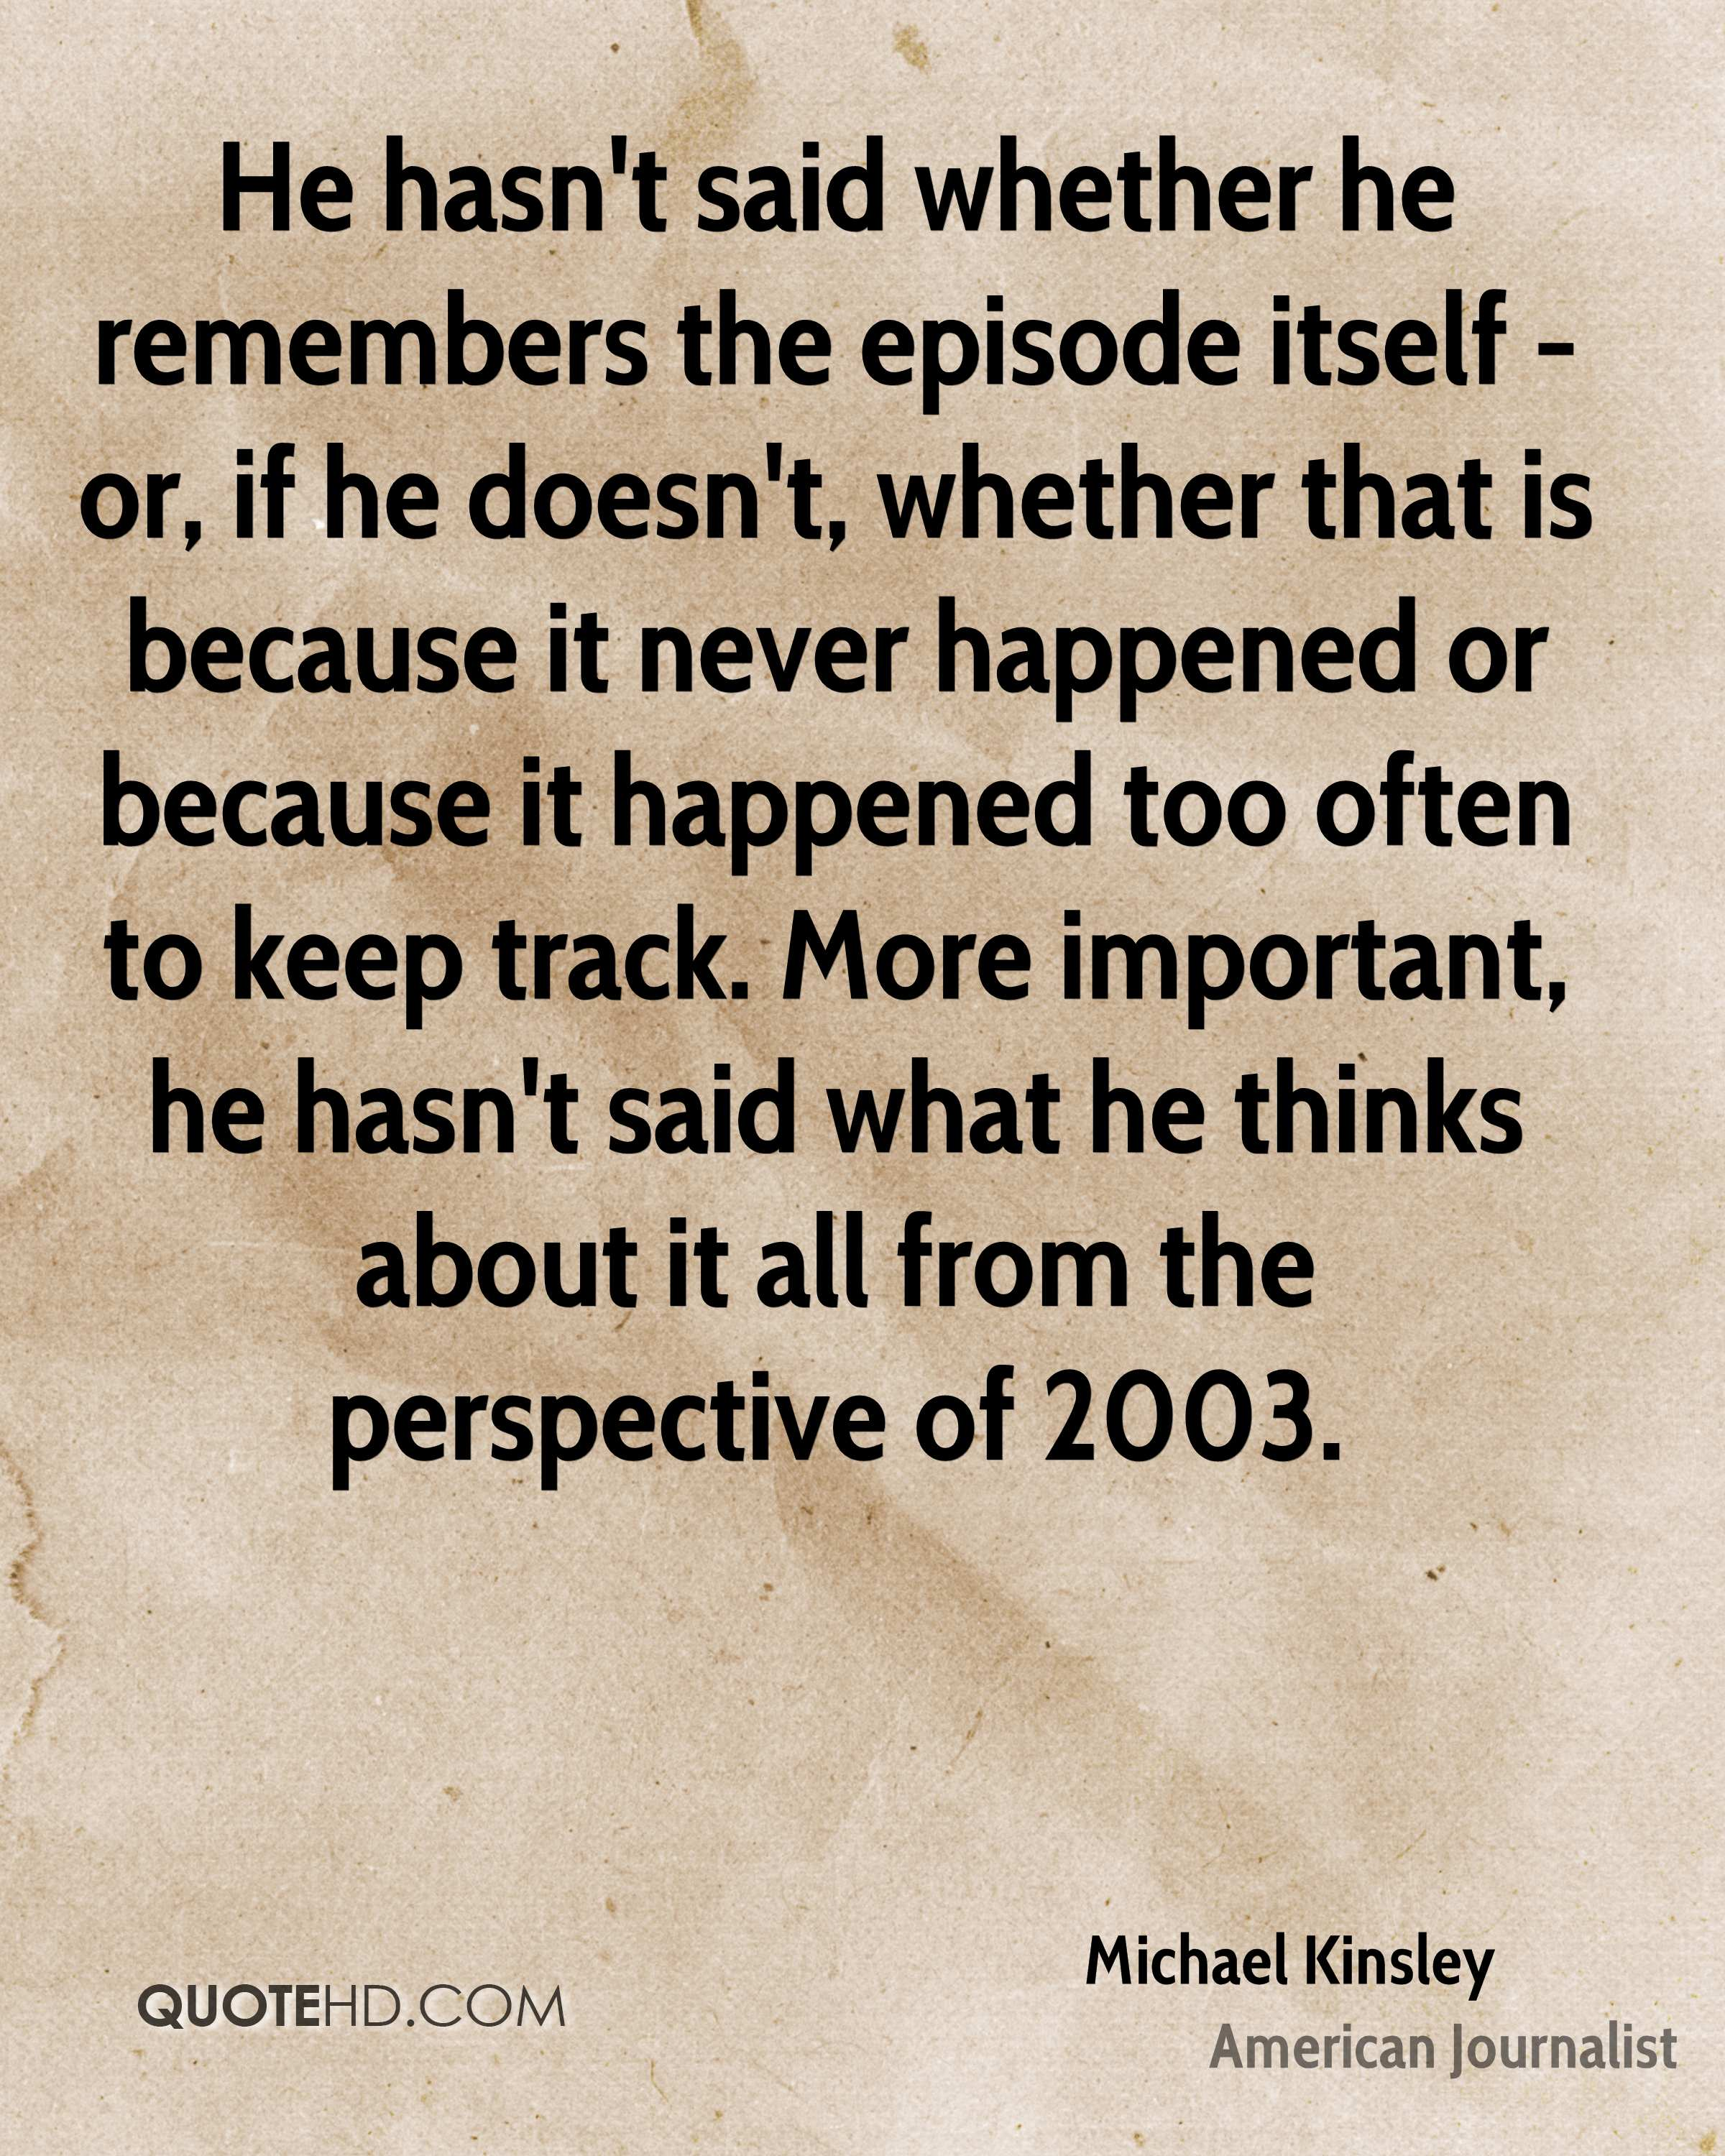 He hasn't said whether he remembers the episode itself - or, if he doesn't, whether that is because it never happened or because it happened too often to keep track. More important, he hasn't said what he thinks about it all from the perspective of 2003.